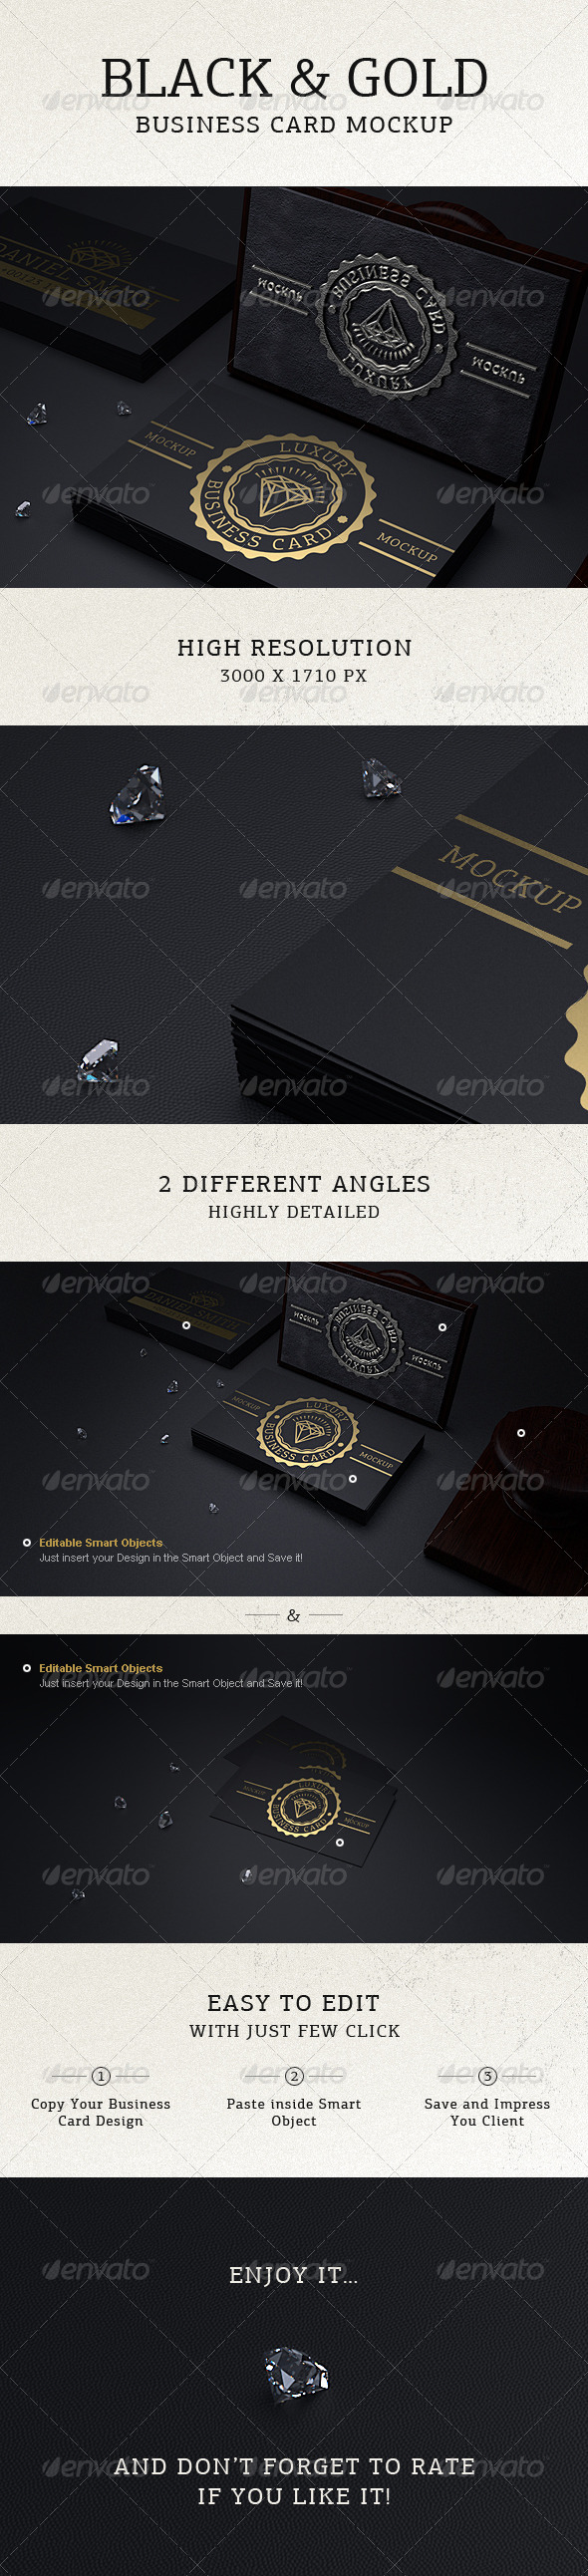 GraphicRiver Photorealistic Black & Gold Business Card Mock Up 6400458